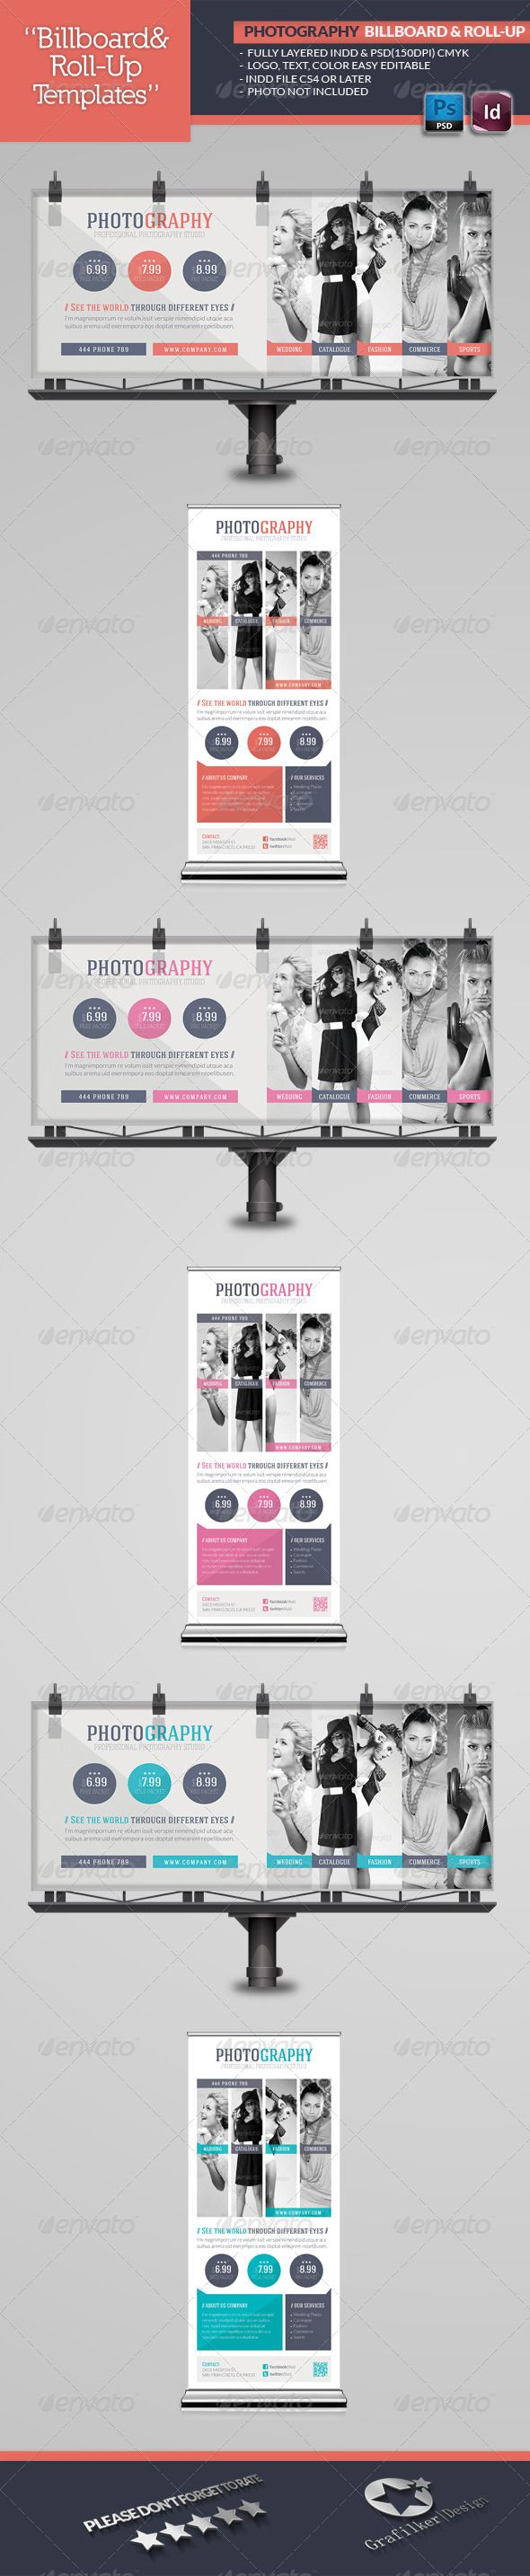 Photography Billboard & Roll-Up Template  #GraphicRiver        Photography Billboard & Roll-Up Template  Fully layered INDD   Fully layered PSD   70×30 and 30×70 Inches .Indd   70×30 and 30×70 150 Dpi .Psd   Fully layered PSD   300 Dpi, CMYK   IDML format open Indesign CS4 or later  Completely editable, print ready  Text/Font or Color can be altered as needed  All Image are in vector format, so can customise easily  Images Not Inculed  Font Links: Lato Font: Lato Font:  .fontsquirrel…